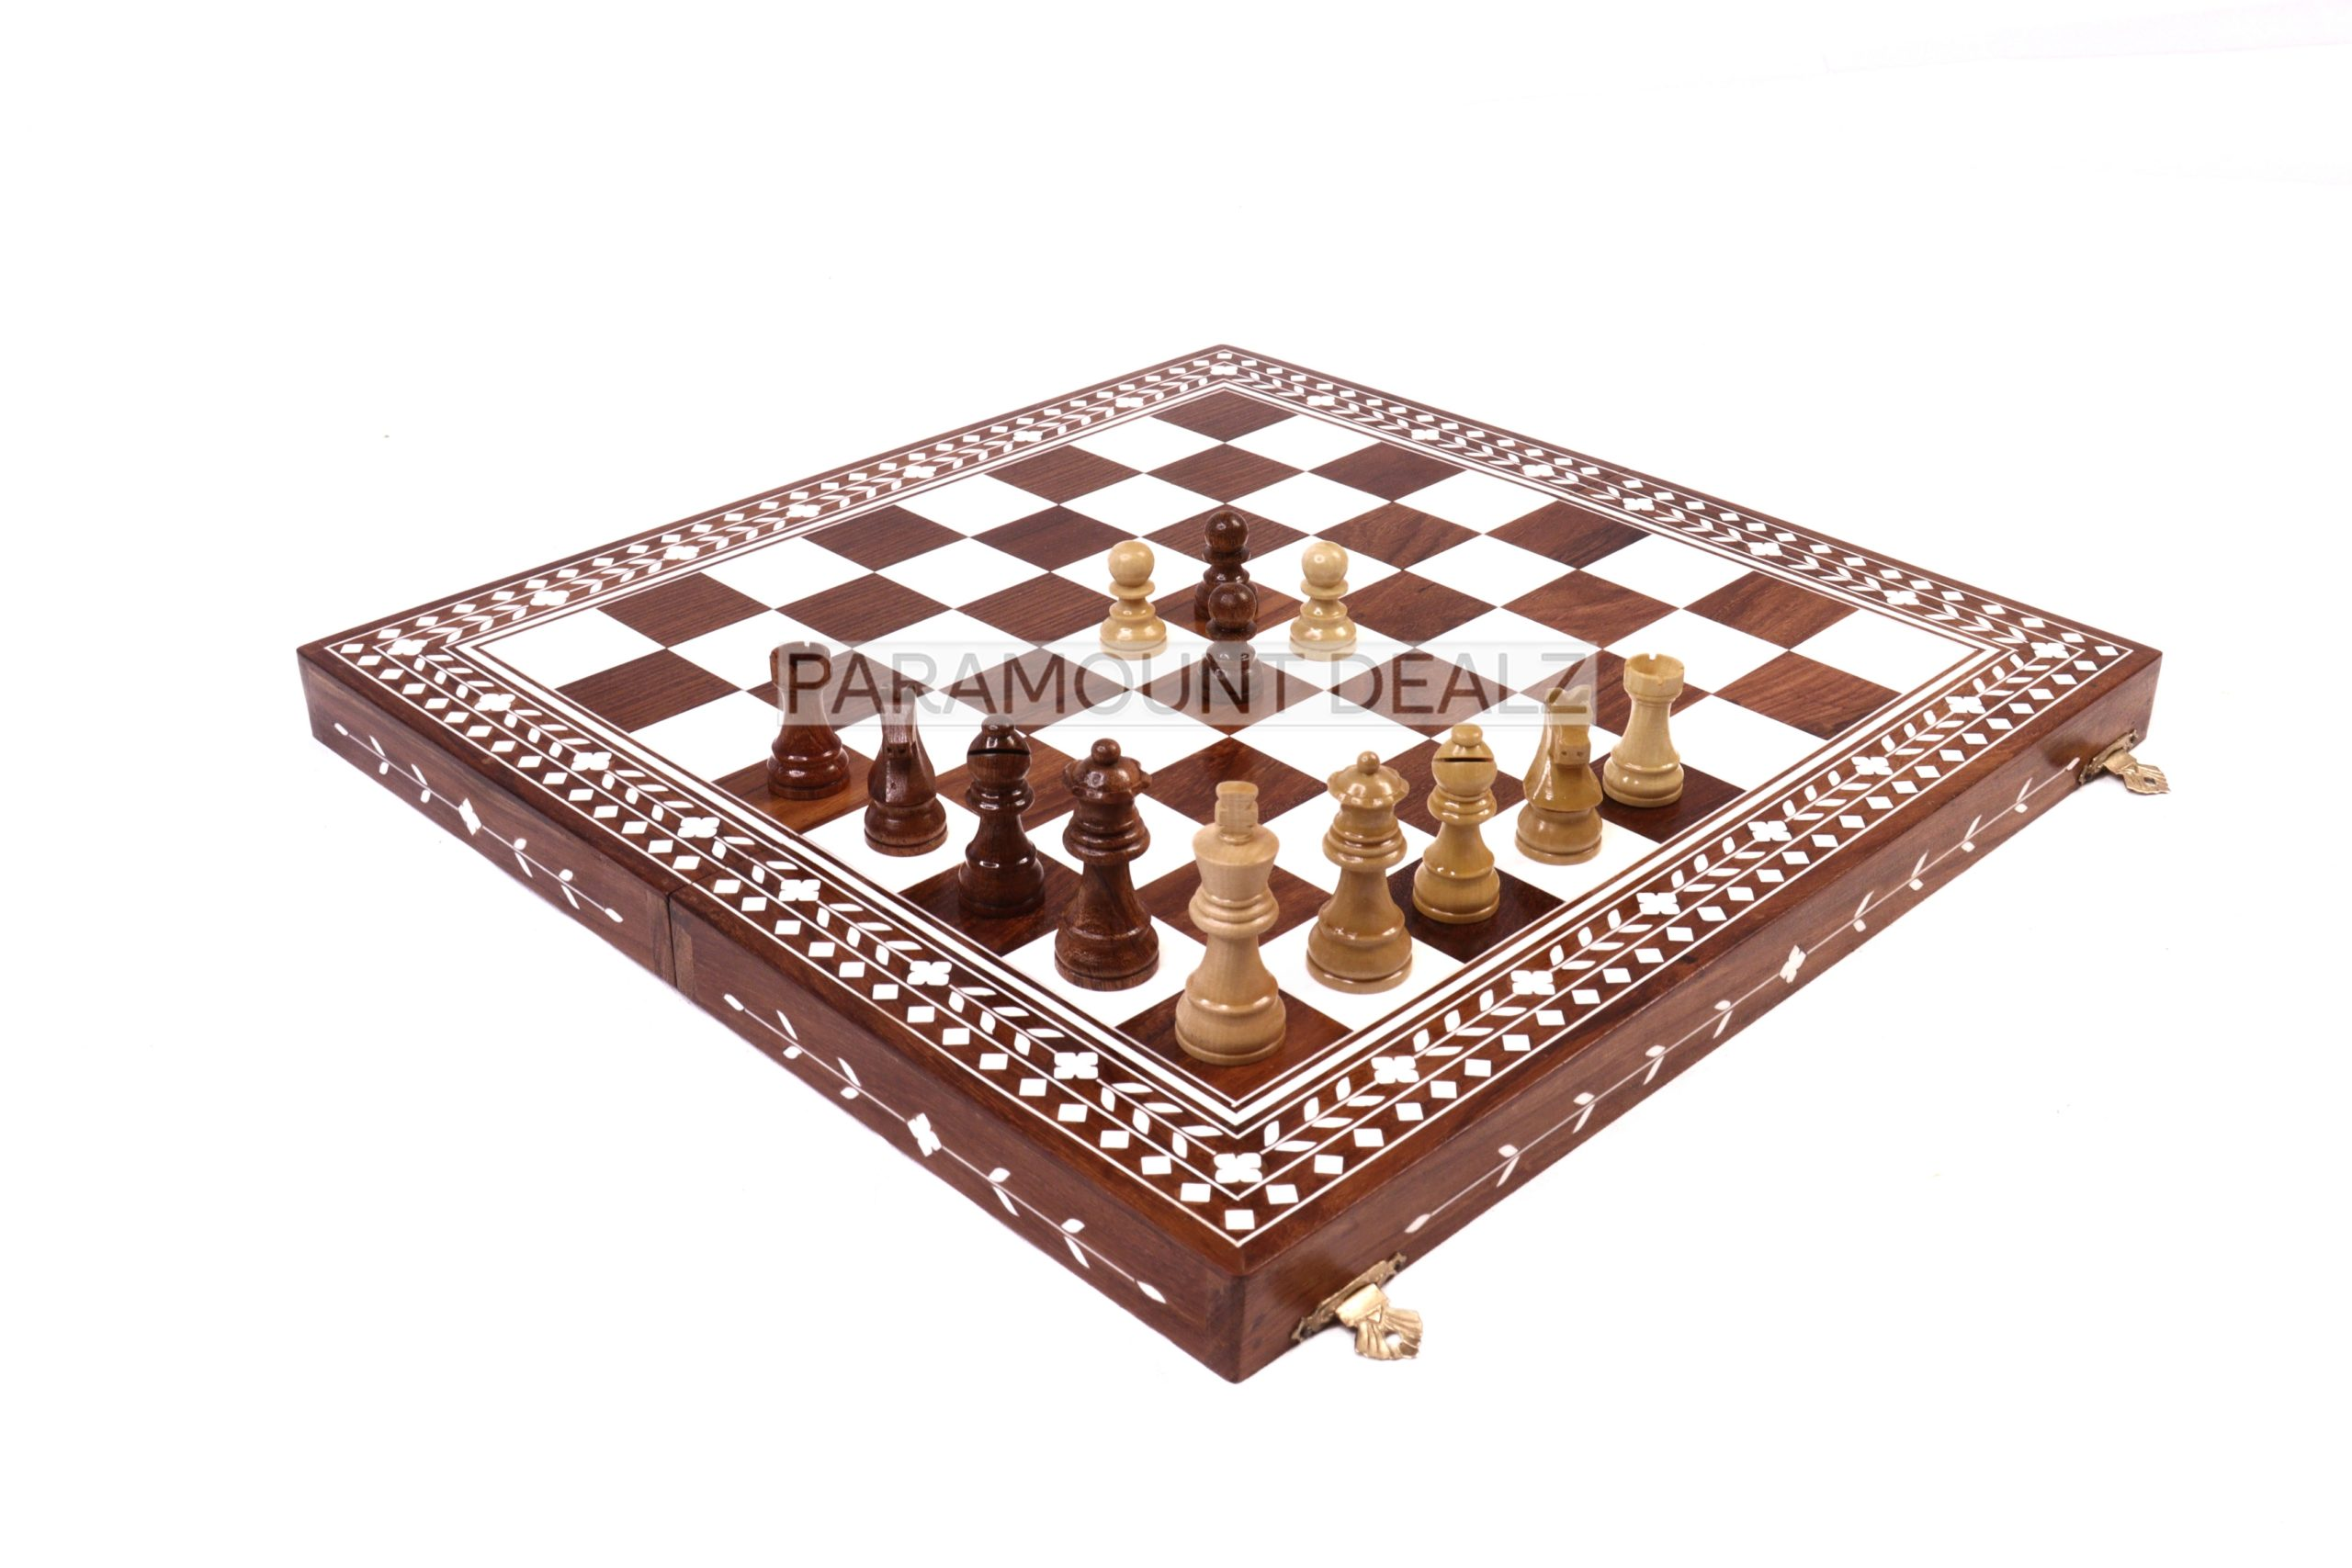 SOLID SHEESHAM & ACRYLIC IVORY INLAID WOODEN FOLDING CHESS SET WITH WOODEN STAUNTION COINS (Copy)